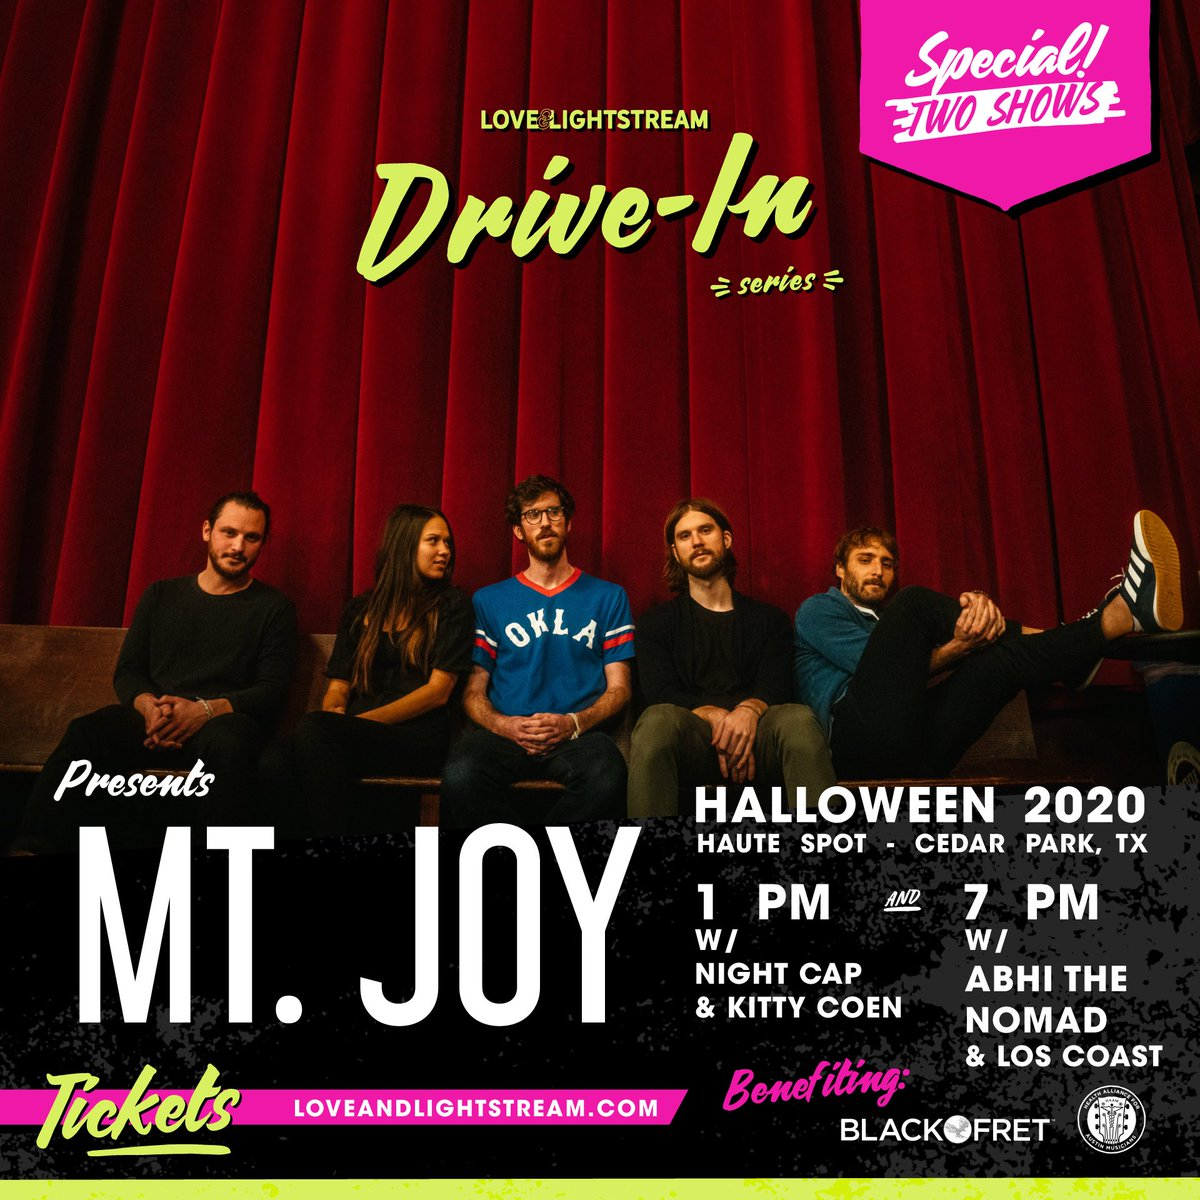 ATX: We're getting not one, but two specials shows on Halloween from 2018 #ACLFest alum @MtJoyBand. ✌️Taking place at the @HauteSpotVenue in Cedar Park, let's do Halloween right this year with a #driveinconcert for the win! 🎃